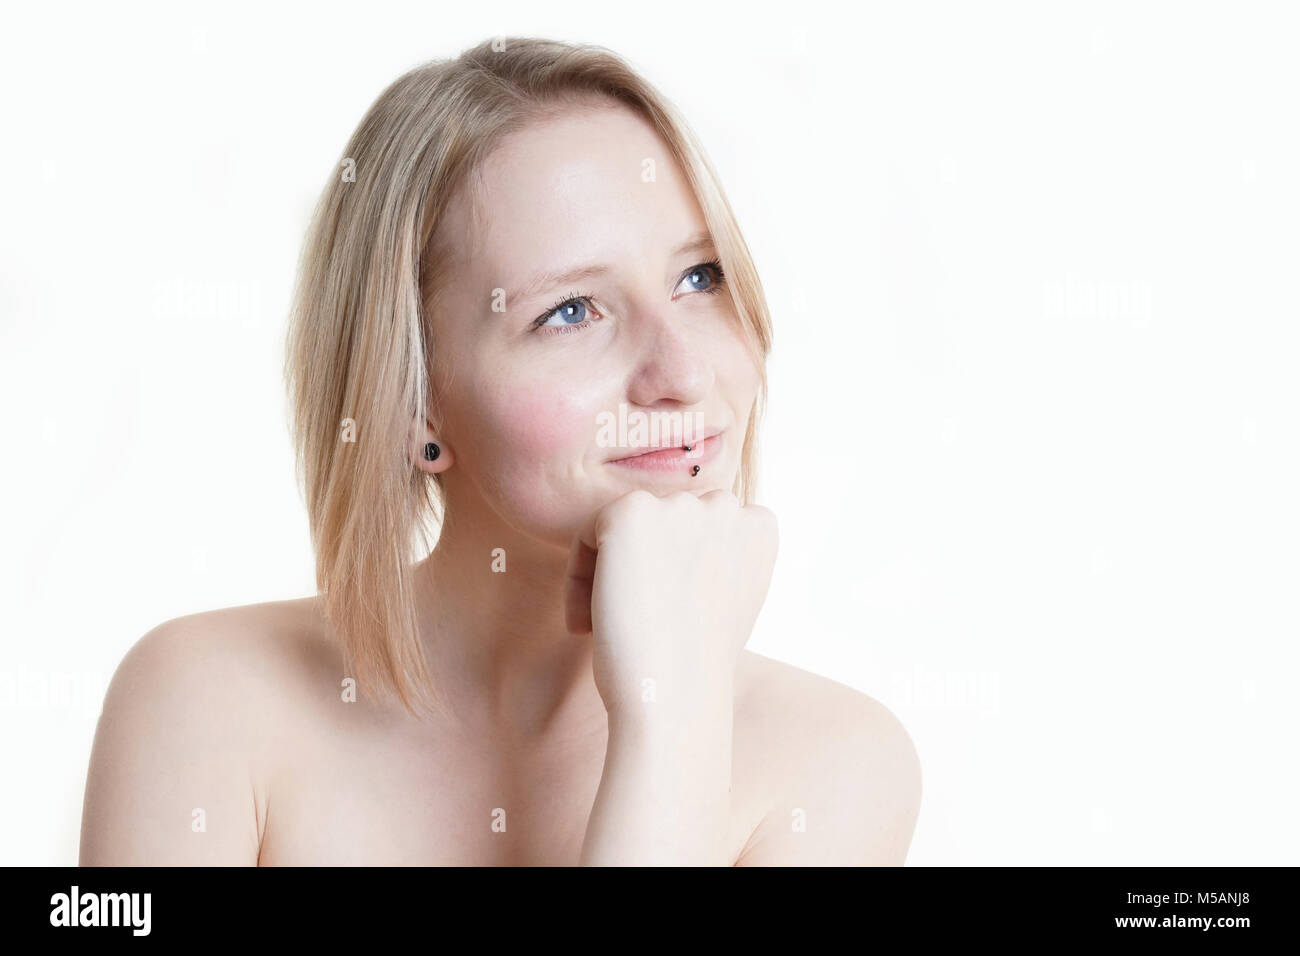 blue-eyed blonde young woman looking at copy space - Stock Image